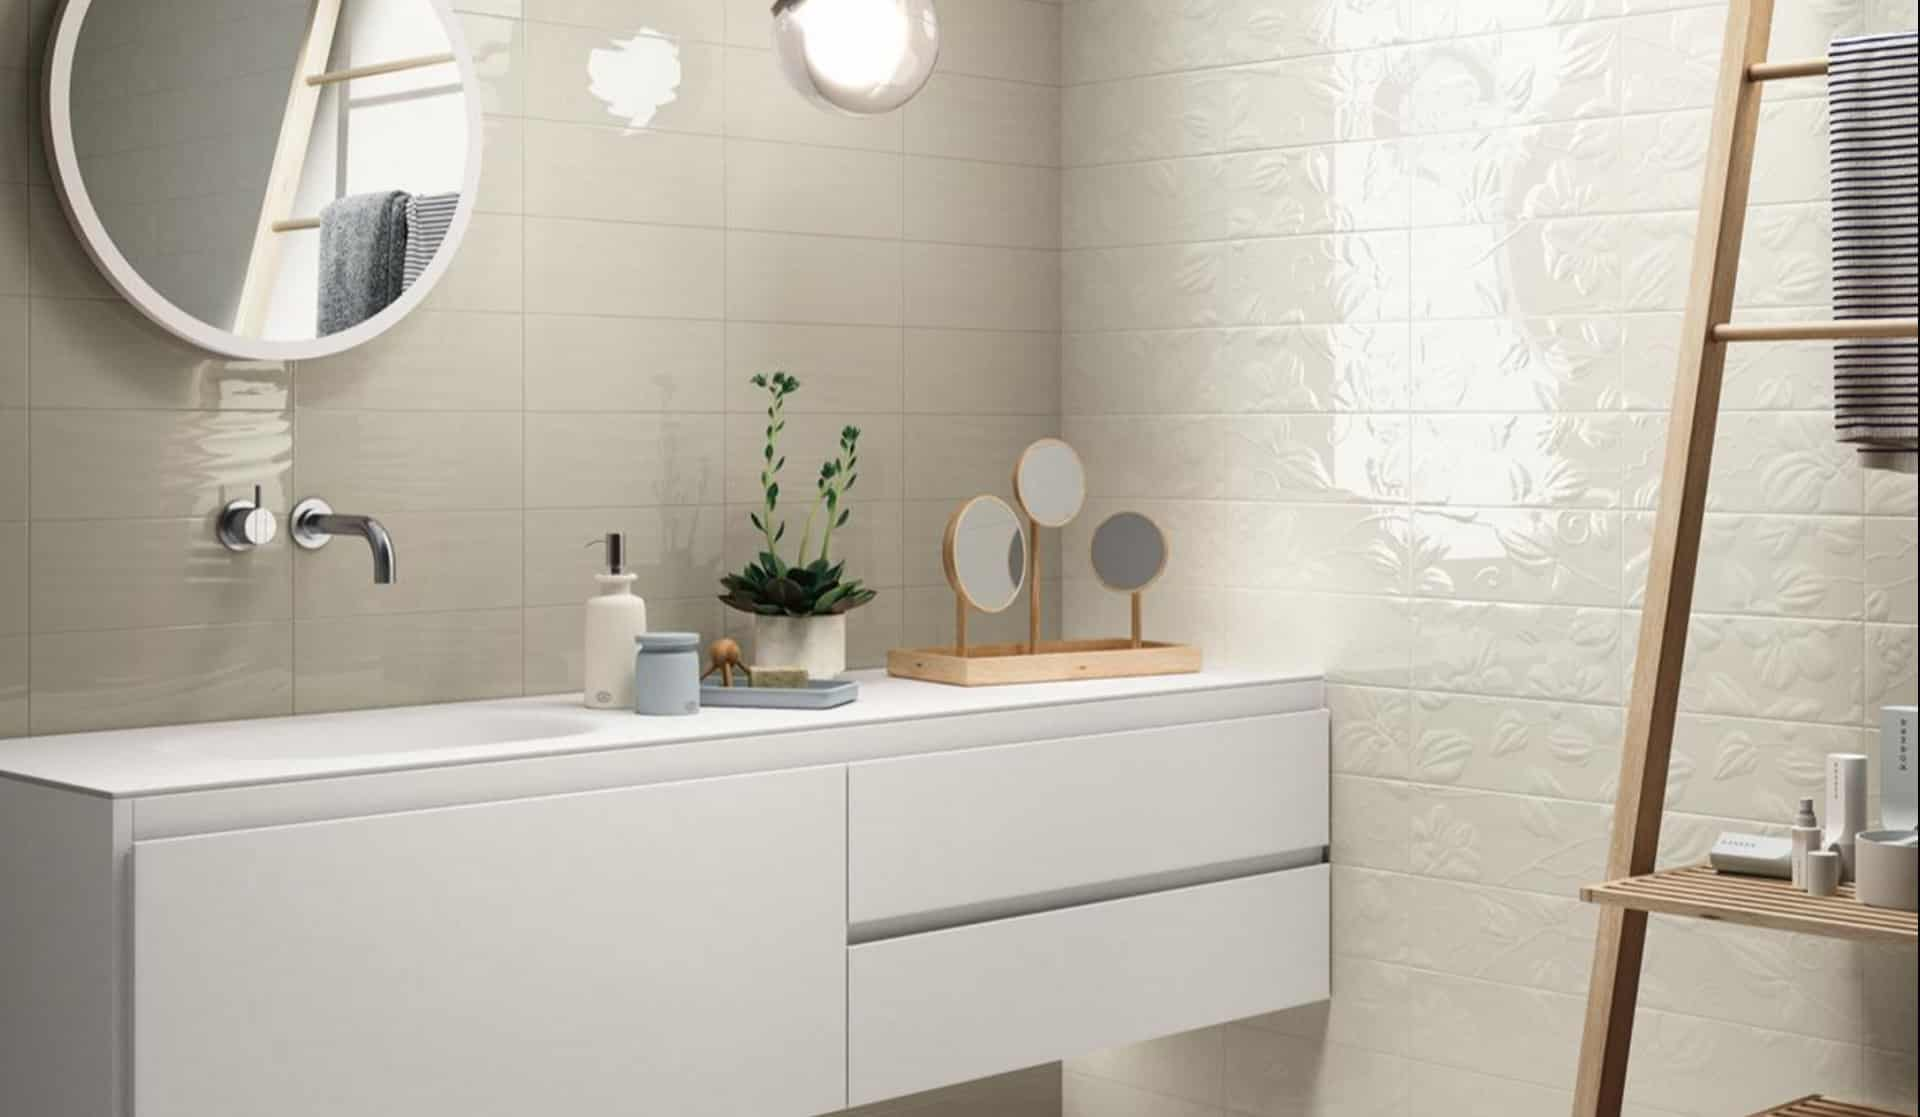 Tile Ideas For Bathroom Walls Il Rivestimento Bagno Opaco E Lucido Wave